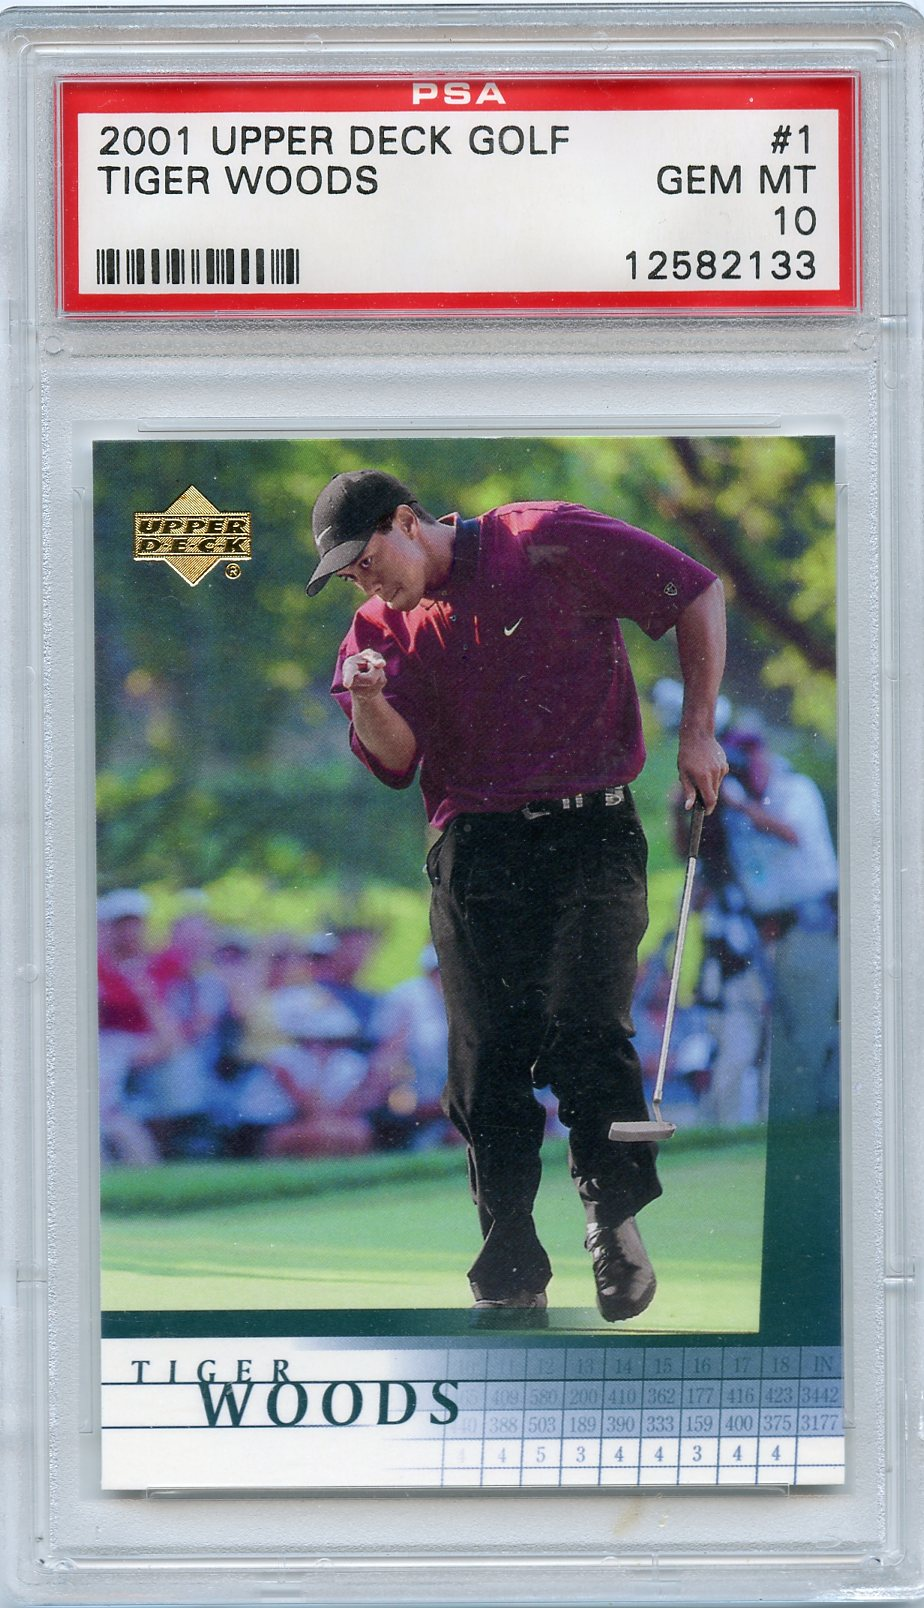 2001 Upper Deck Golf Tiger Woods # 1 PSA Gem Mint 10 by